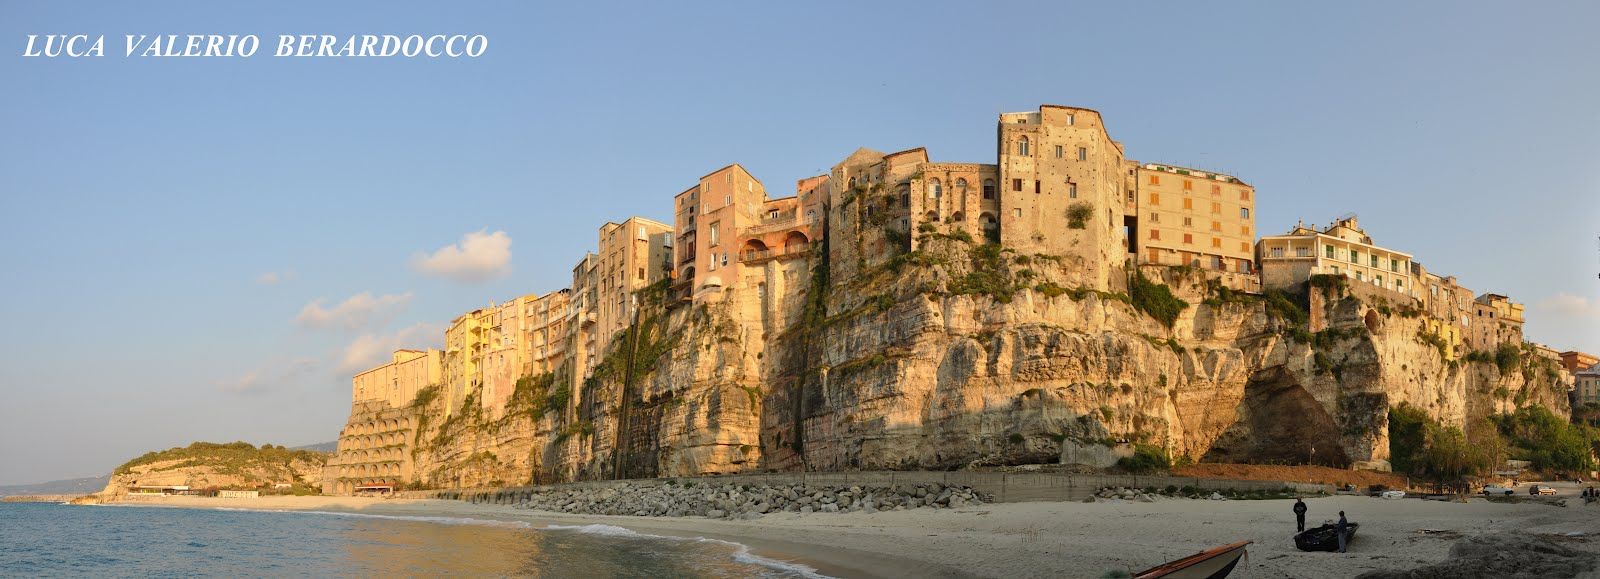 TROPEA - La Rocca sul Tirreno  -  Clicca la Foto  -  Click on the Photo